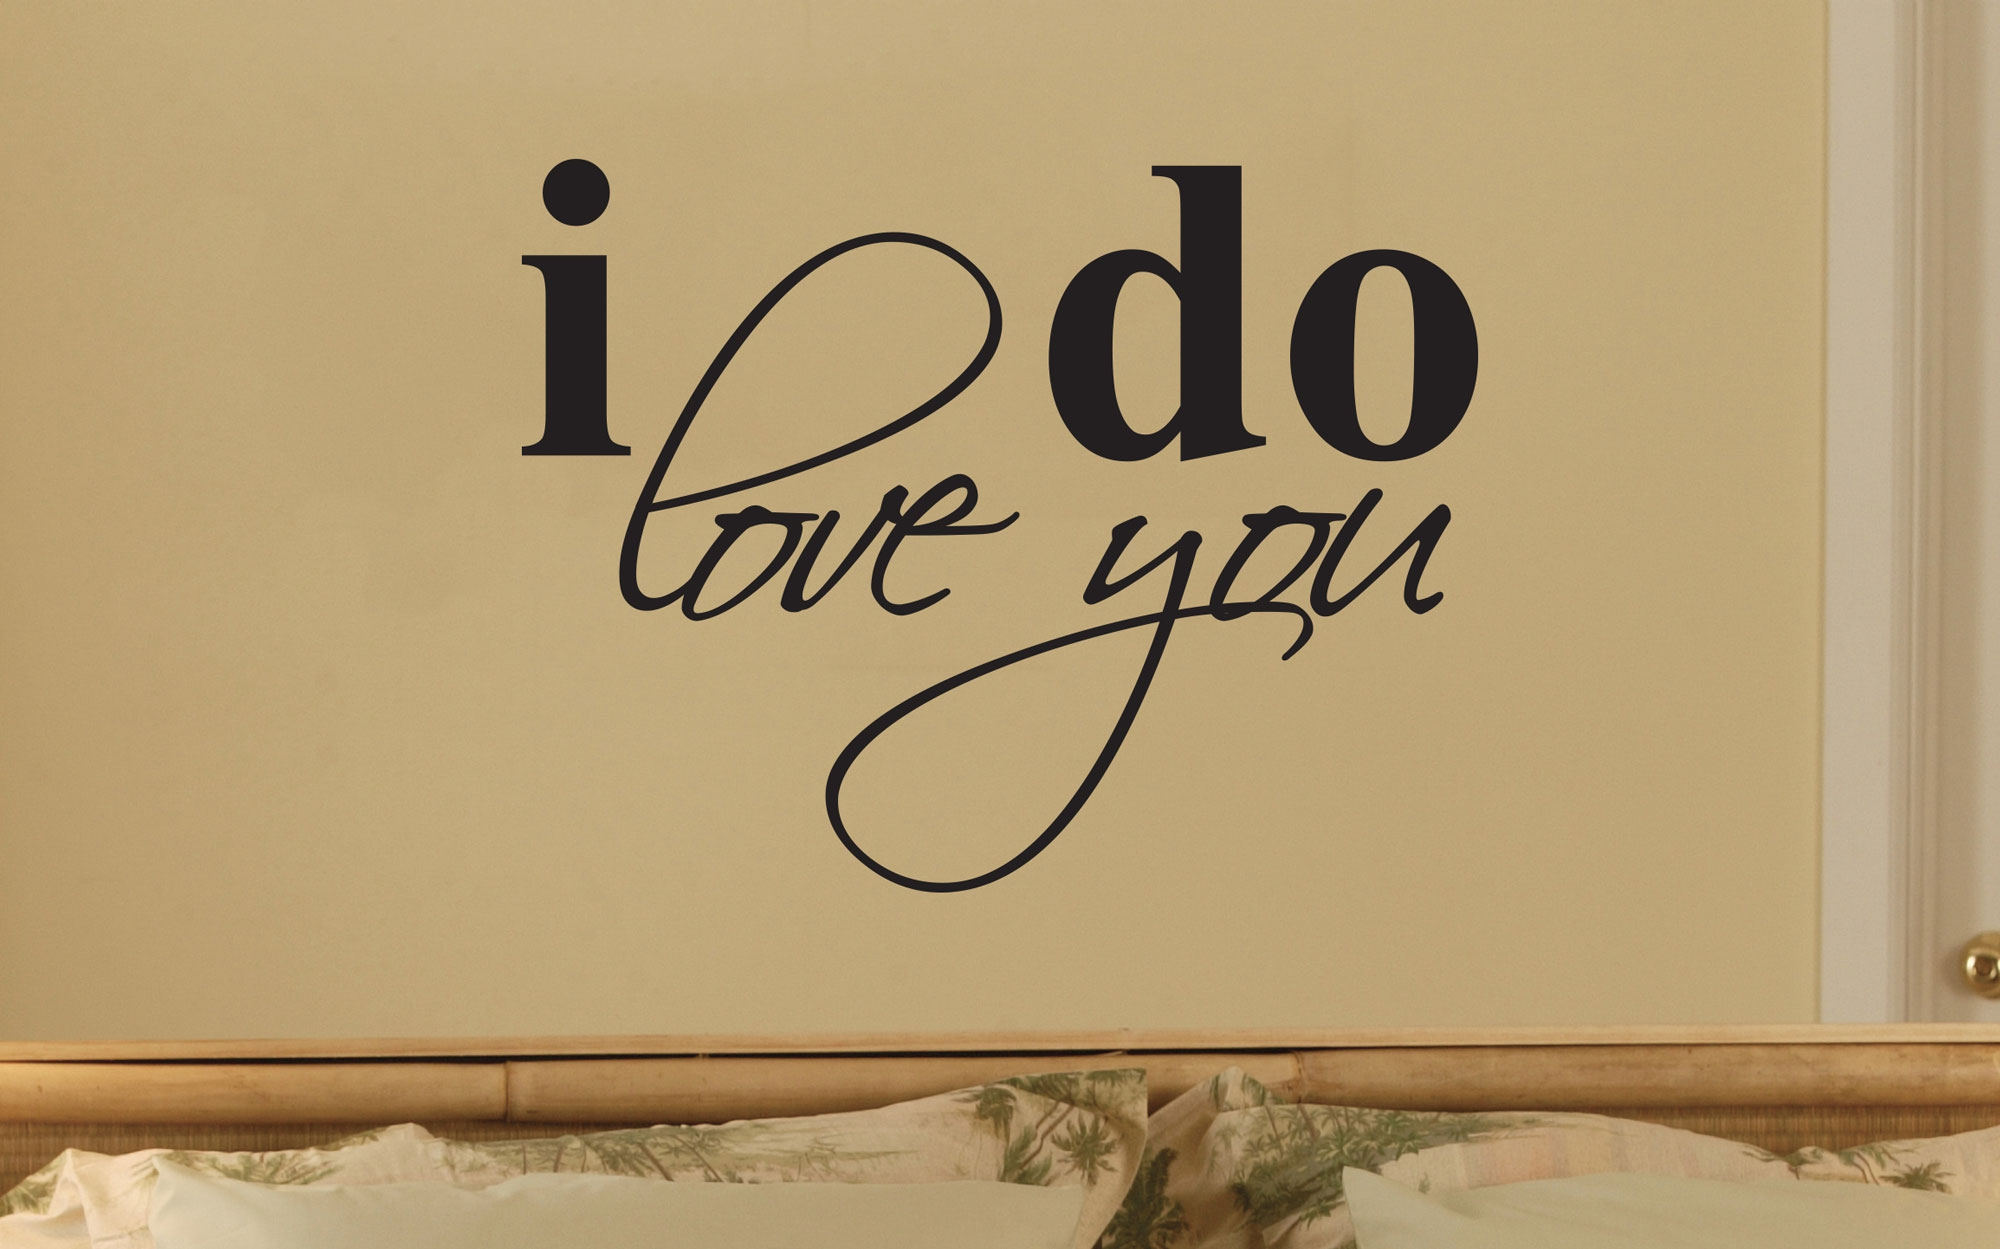 I DO LOVE YOU ART WALL QUOTE SIGN VINYL DECAL STICKER - OZDECO T/S ...